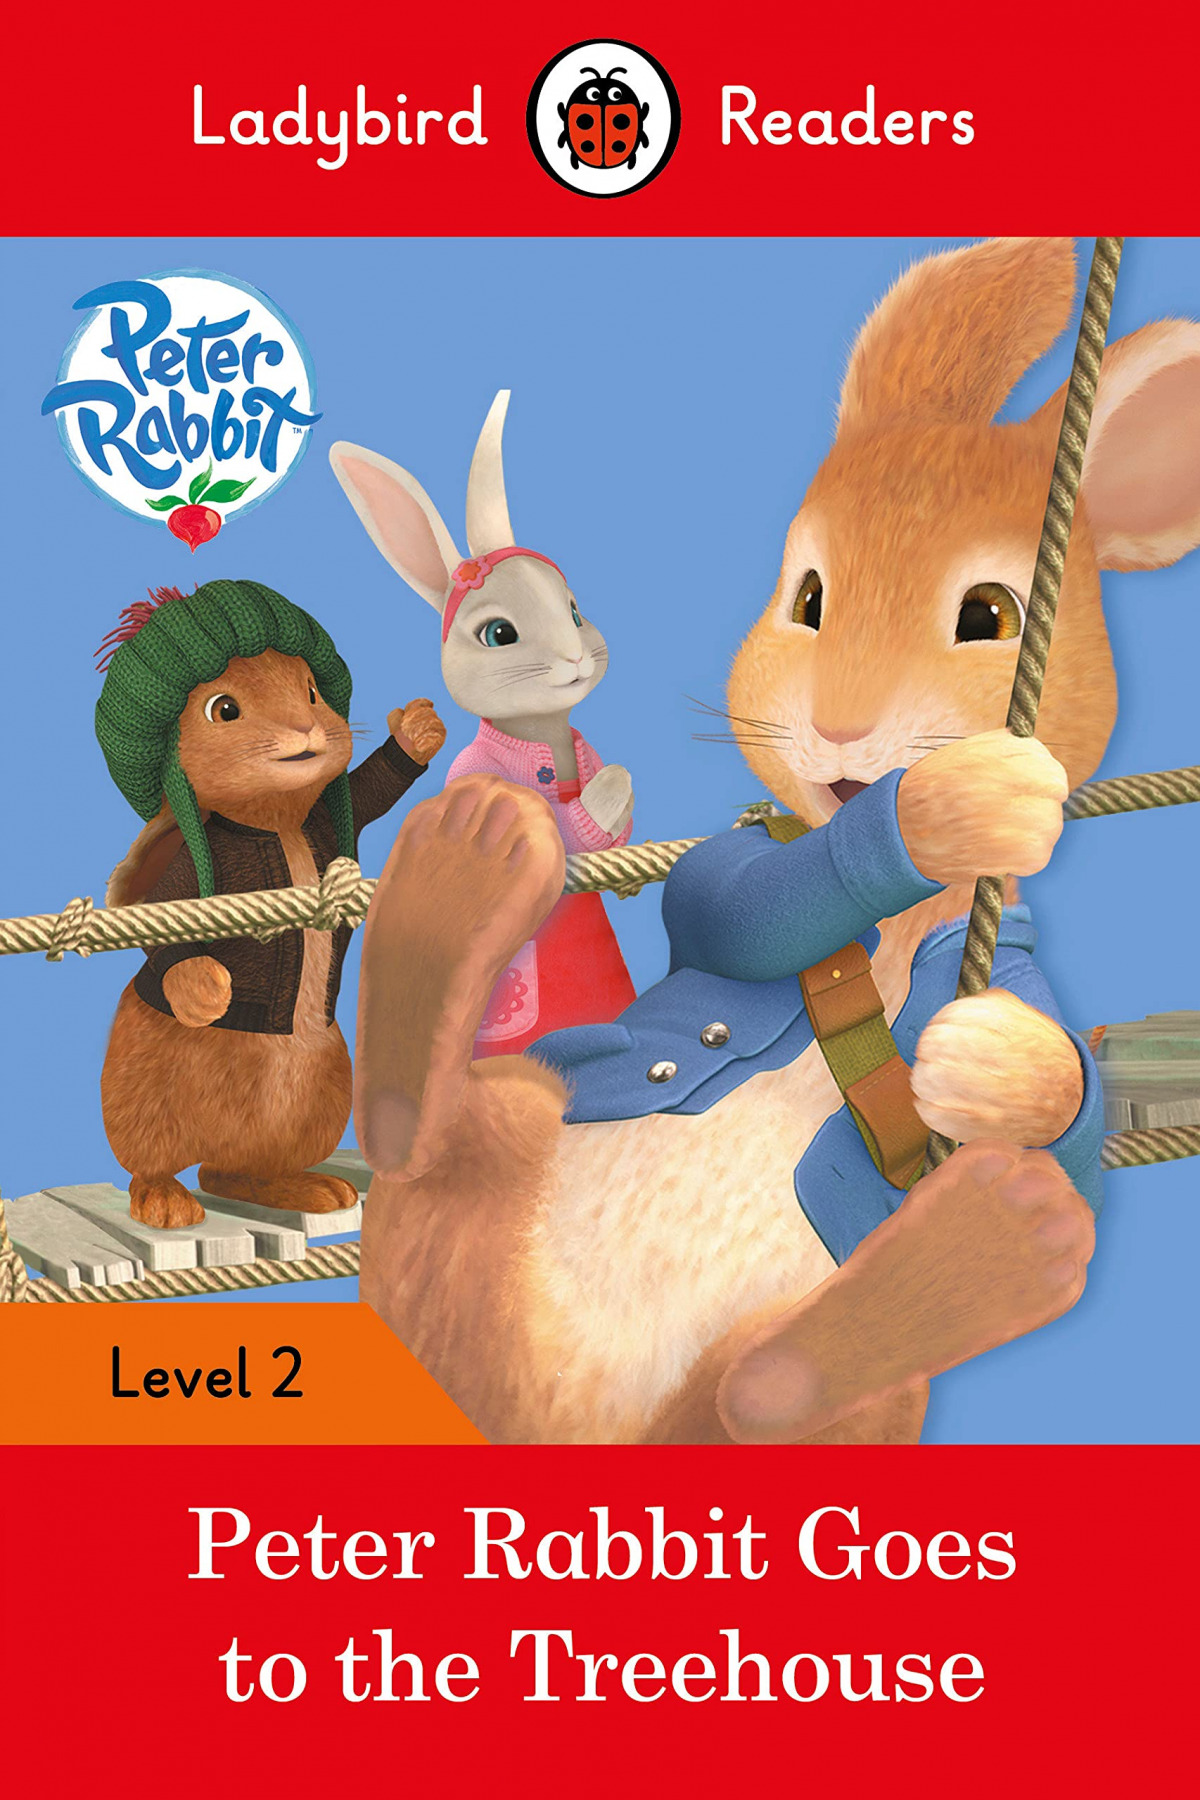 GOES TO THE TREEHOUSE. PETER RABBIT